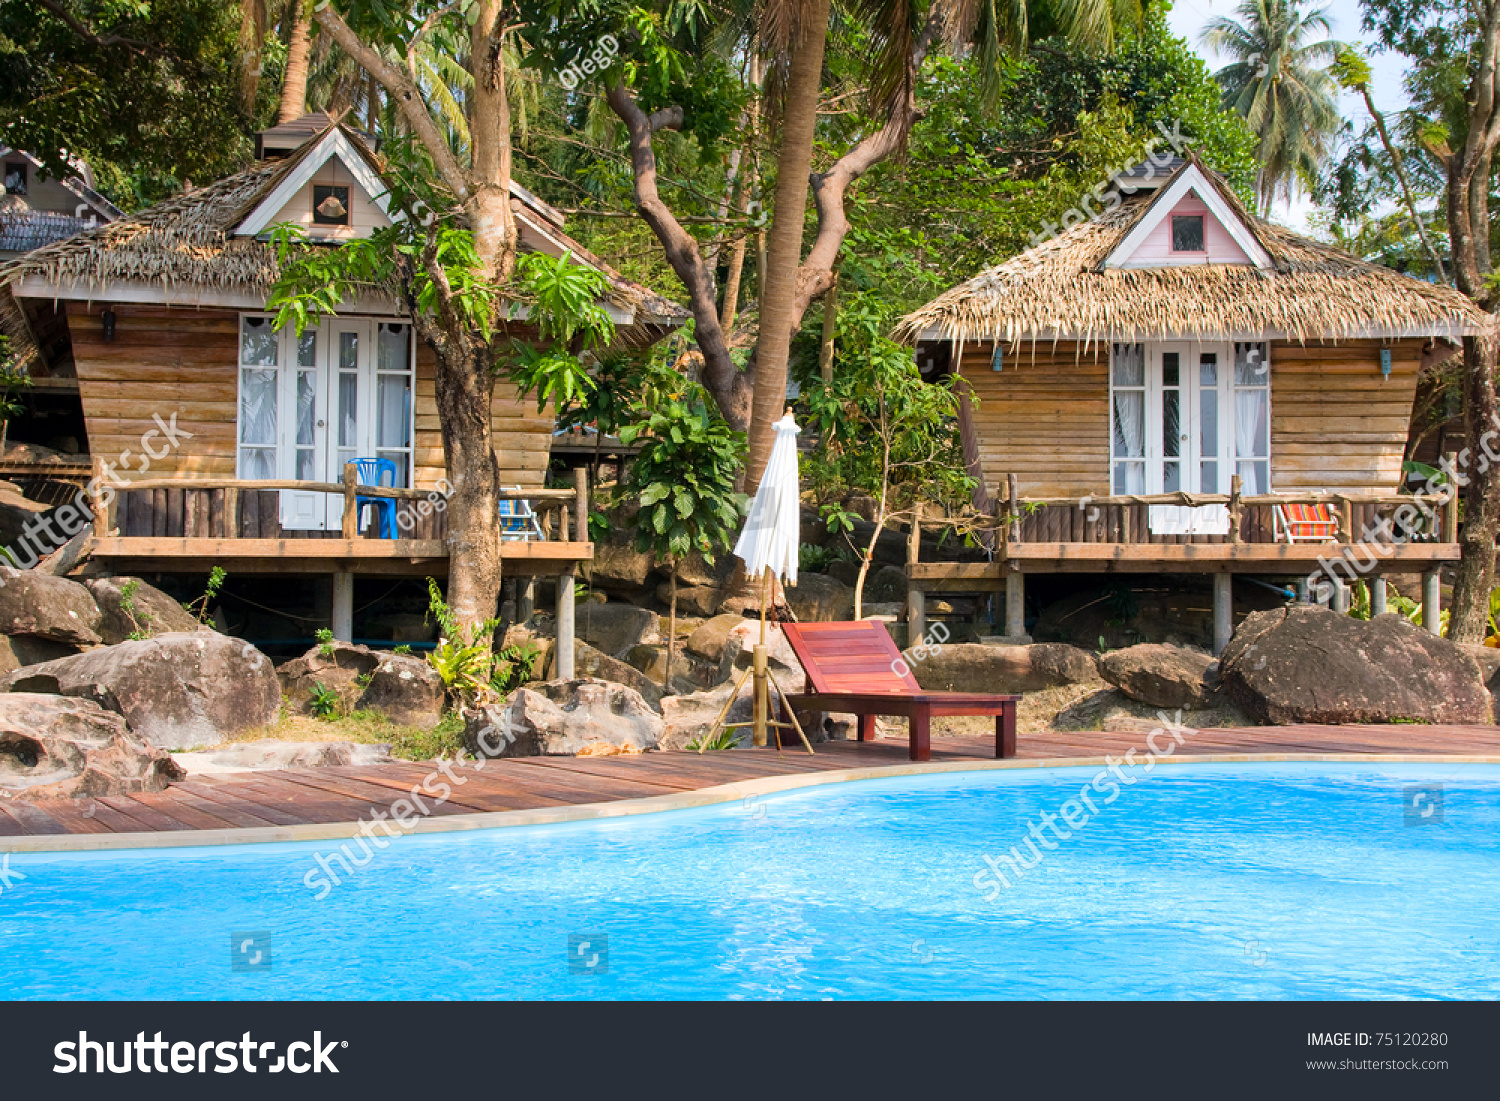 Beautiful tropical beach house in thailand stock photo for Beach house description